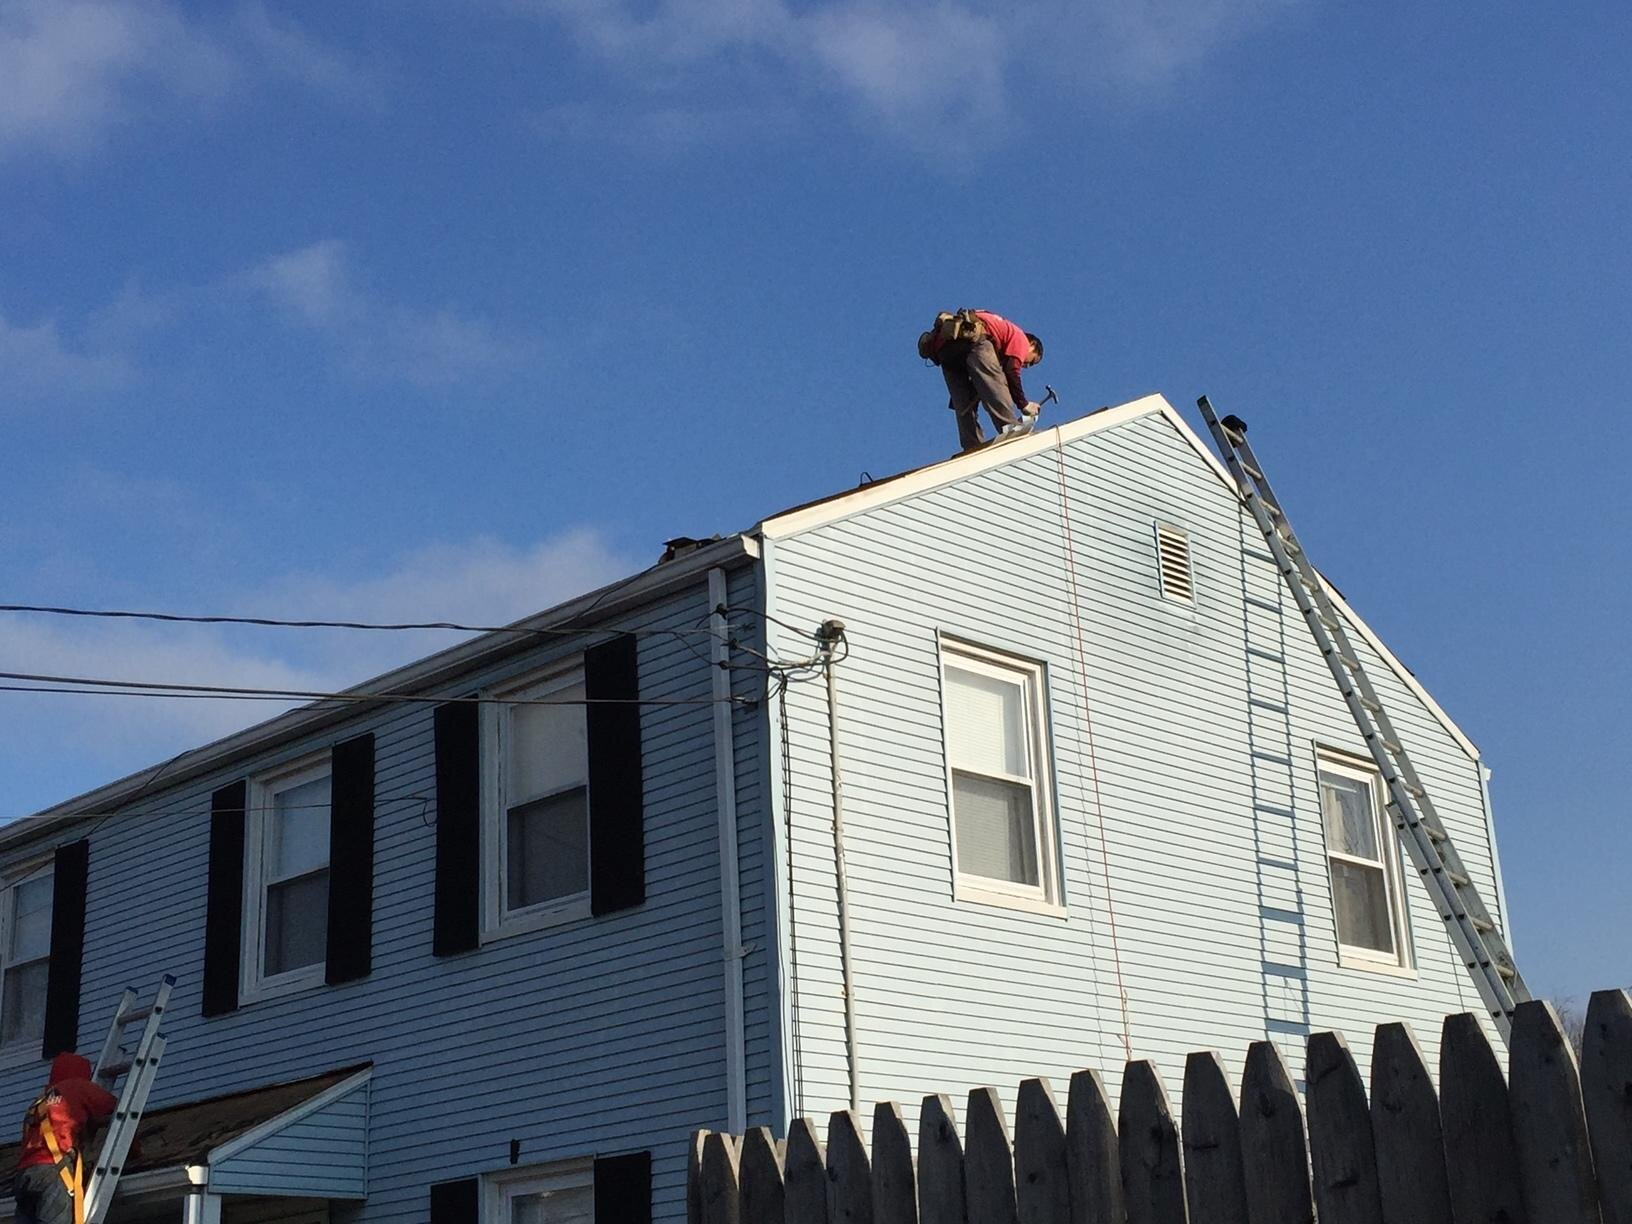 Roofing Company Roofing Contractor In Coopersville Grand Rapids